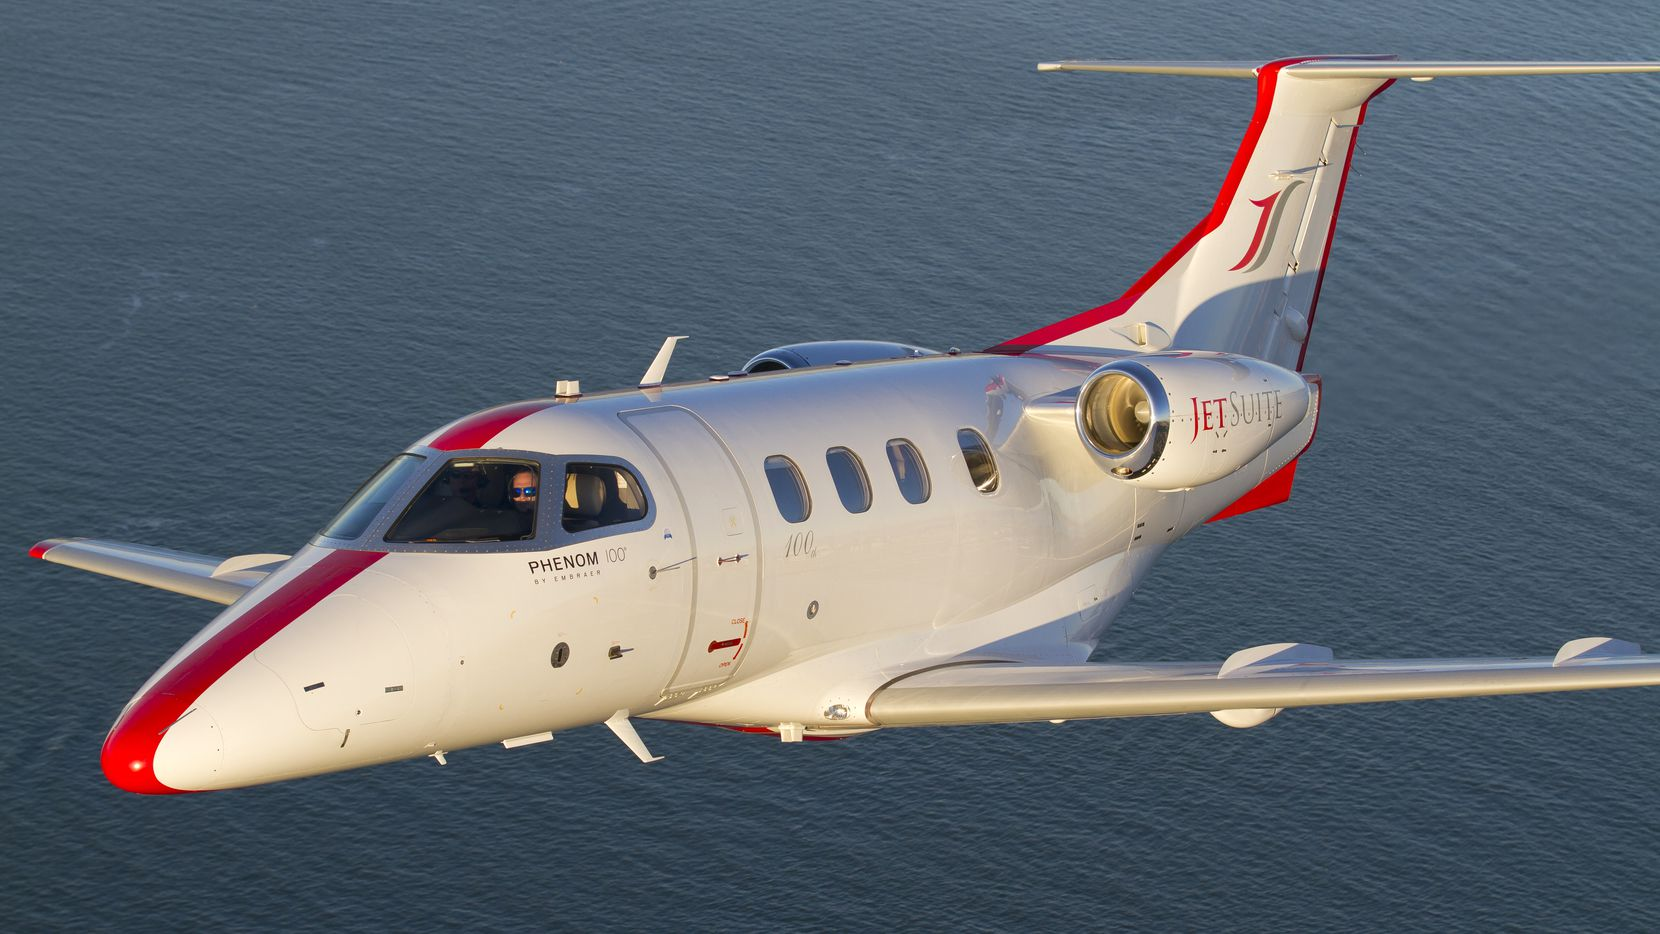 A Phenom 100 jet flown by JetSuite, which provided charters and on-demand flights to upscale travelers.